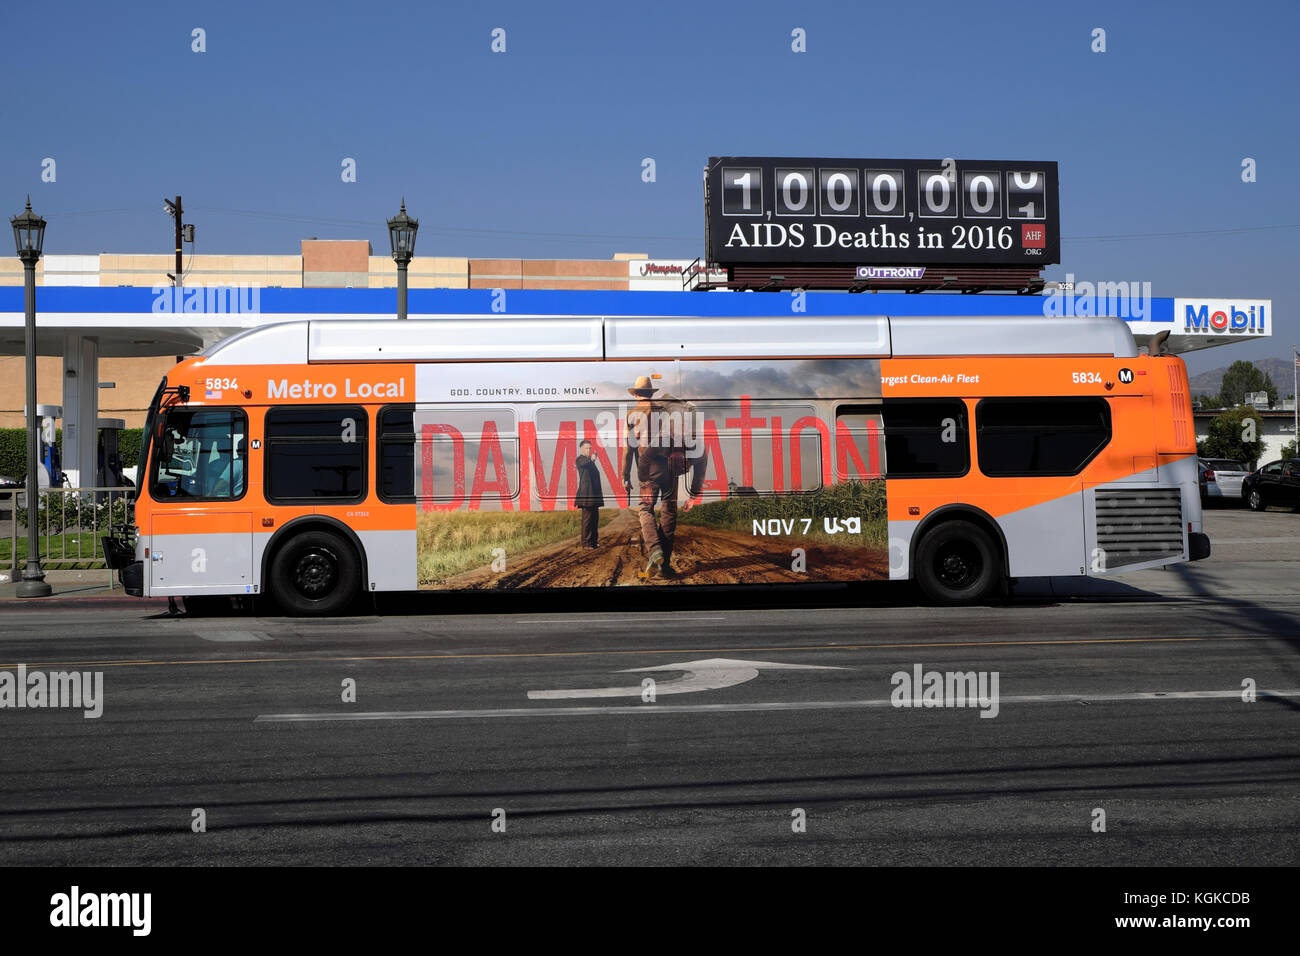 An advertisement for the movie DAMNATION on the side of an orange metro bus & Aids Deaths Counter billboard - Stock Image